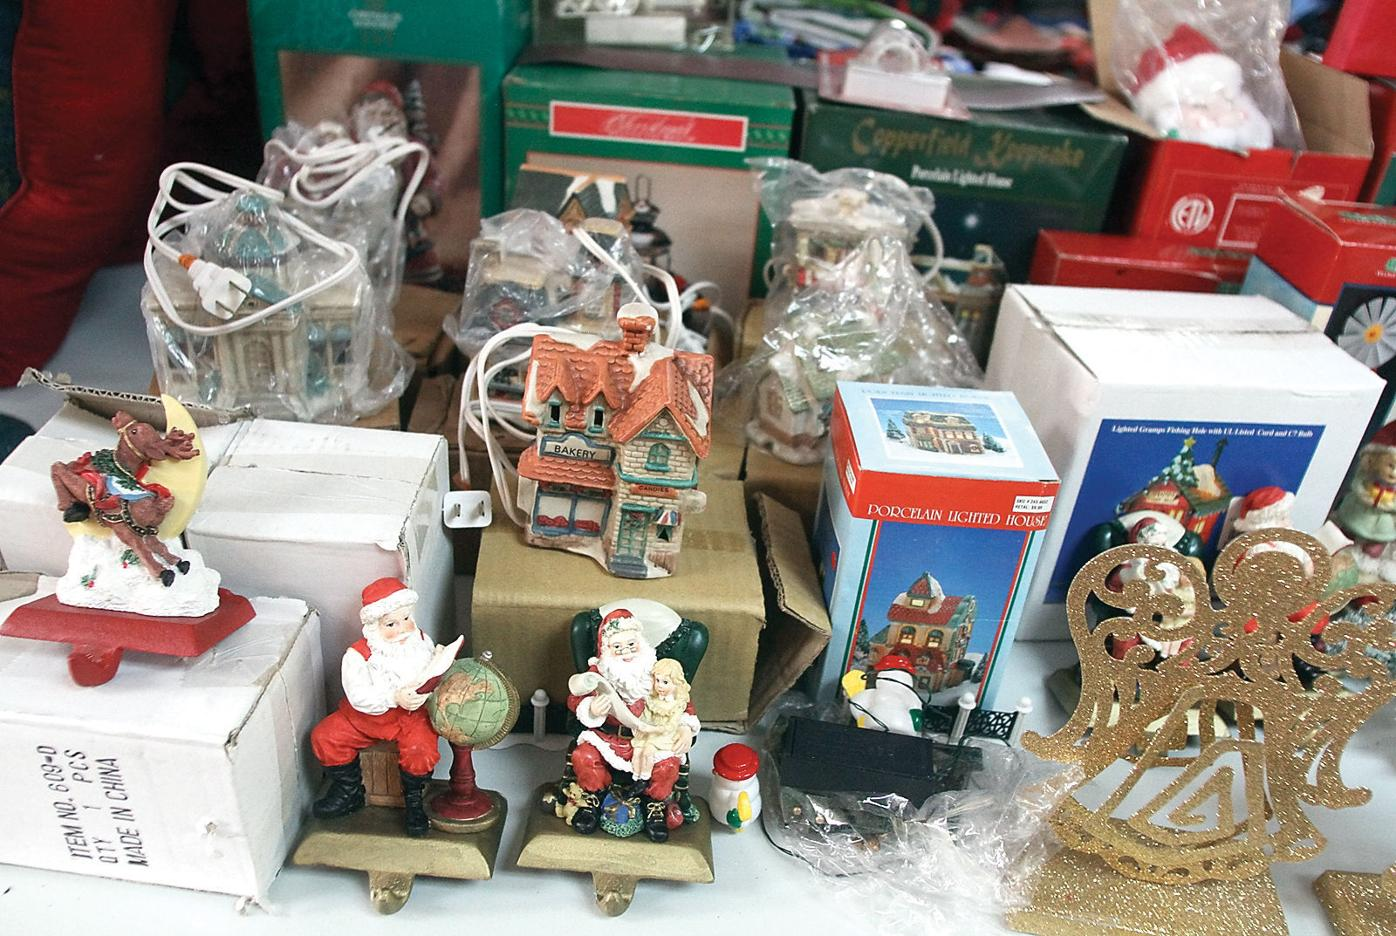 CCI in Friendsville will hold it's annual Christmas fundraiser.